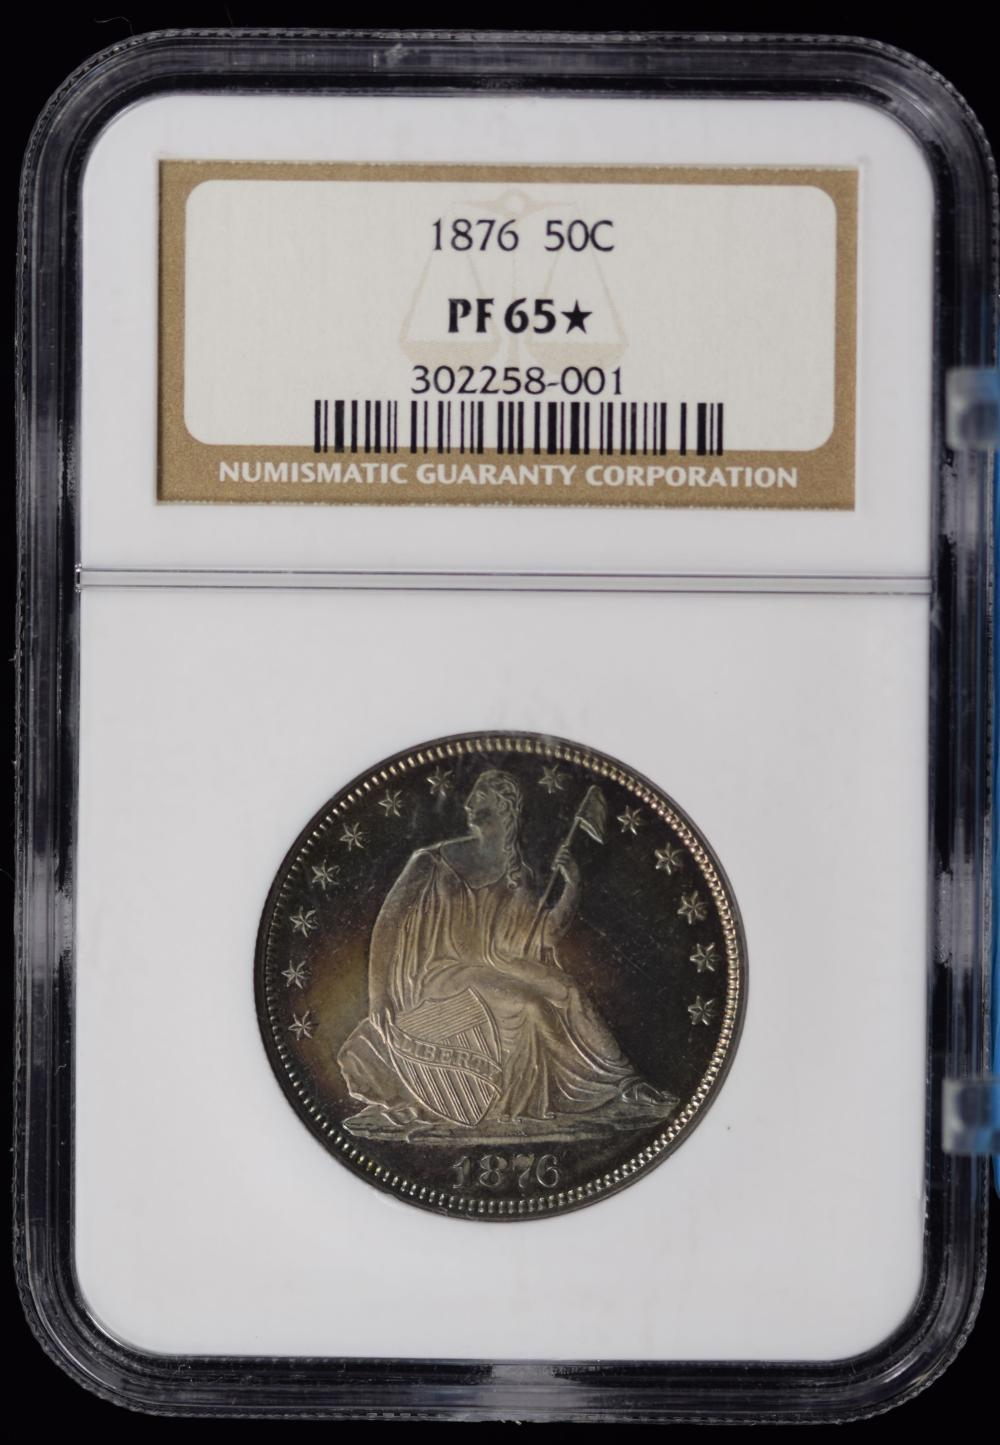 1876 Proof Seated Half Dollar NGC PF-65 Star Great Toning